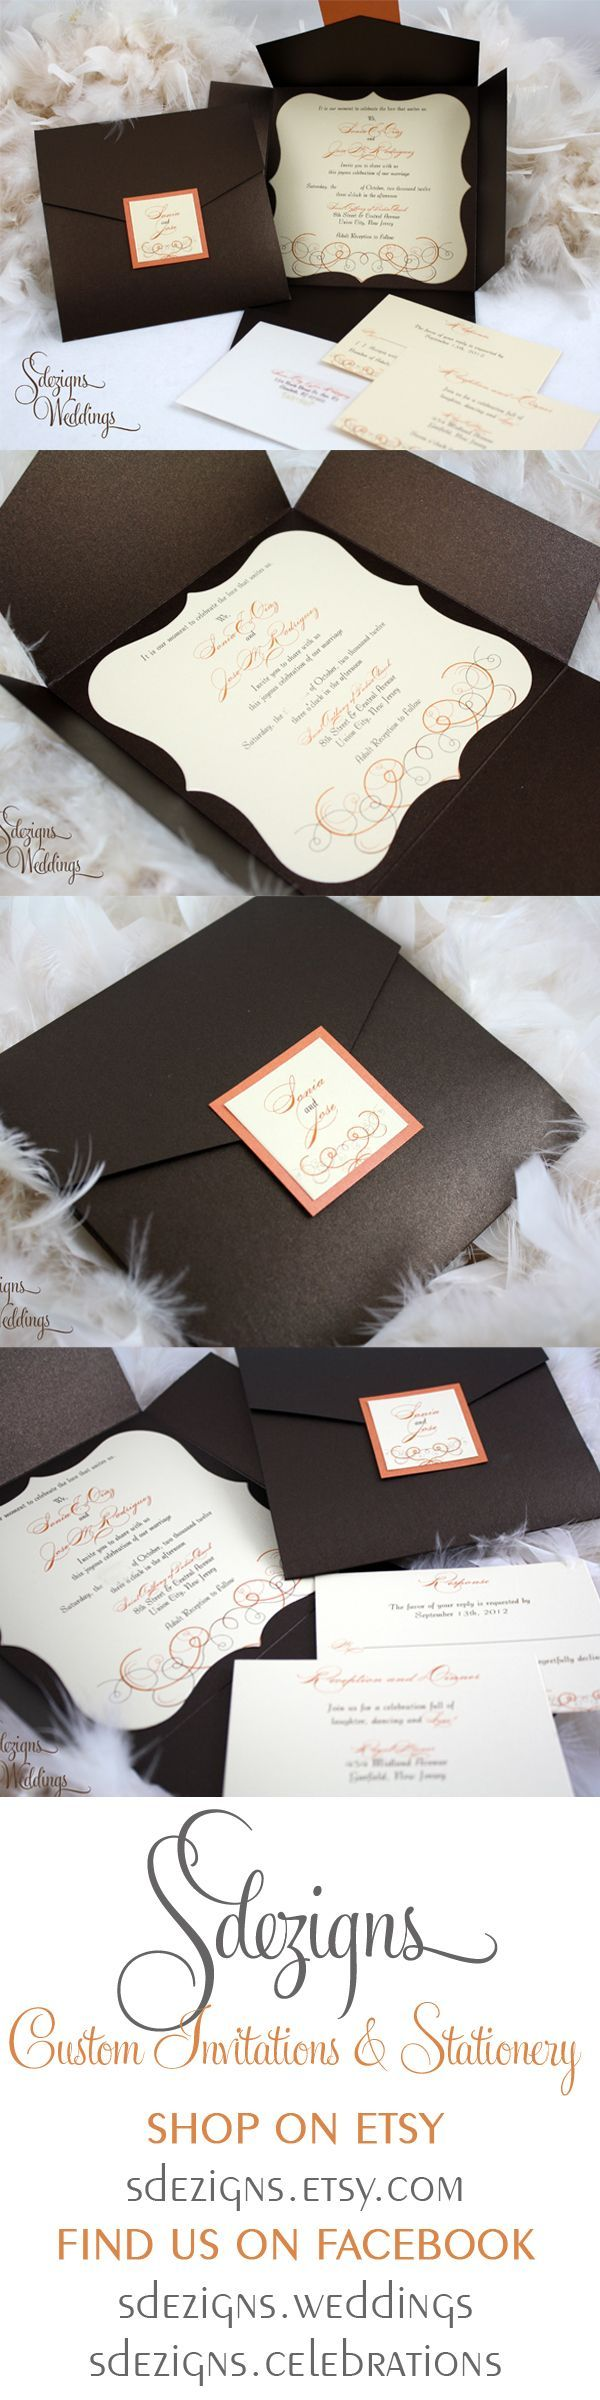 white and gold wedding invitations%0A  Black  u     White Wedding Invitation    Wedding ideas for brides  grooms